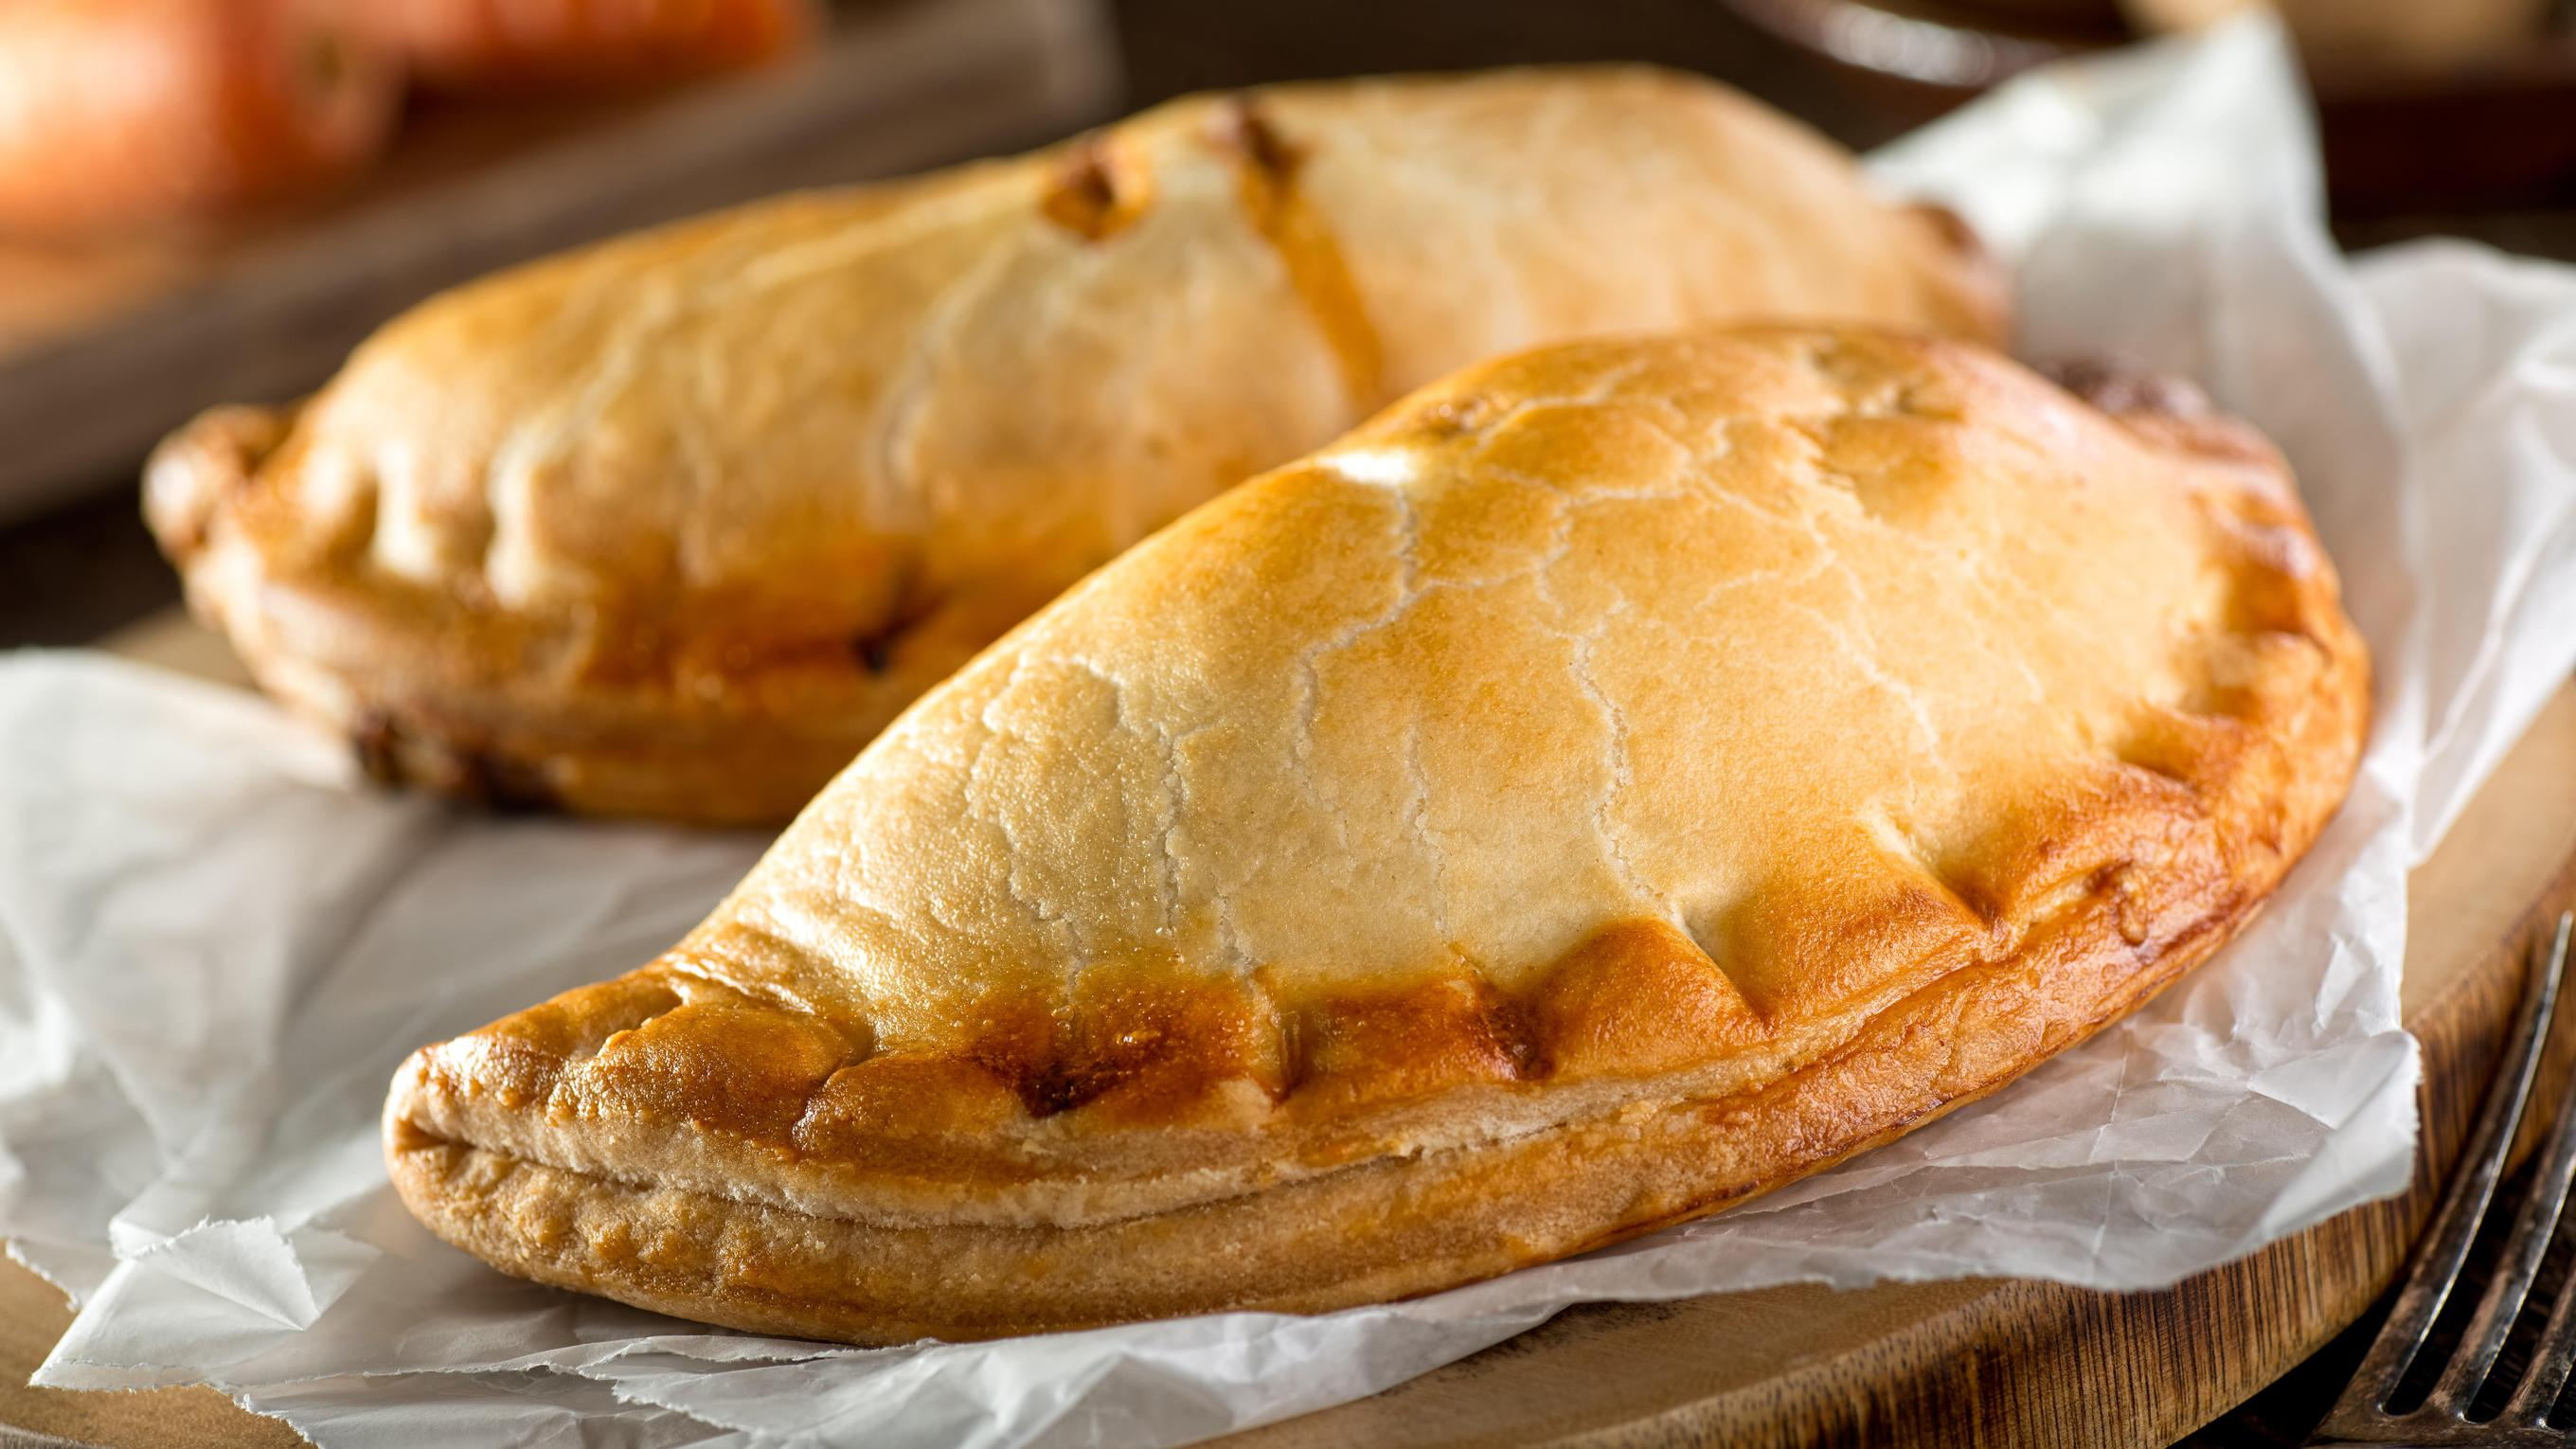 How the Cornish pasty became a Mexican delicacy